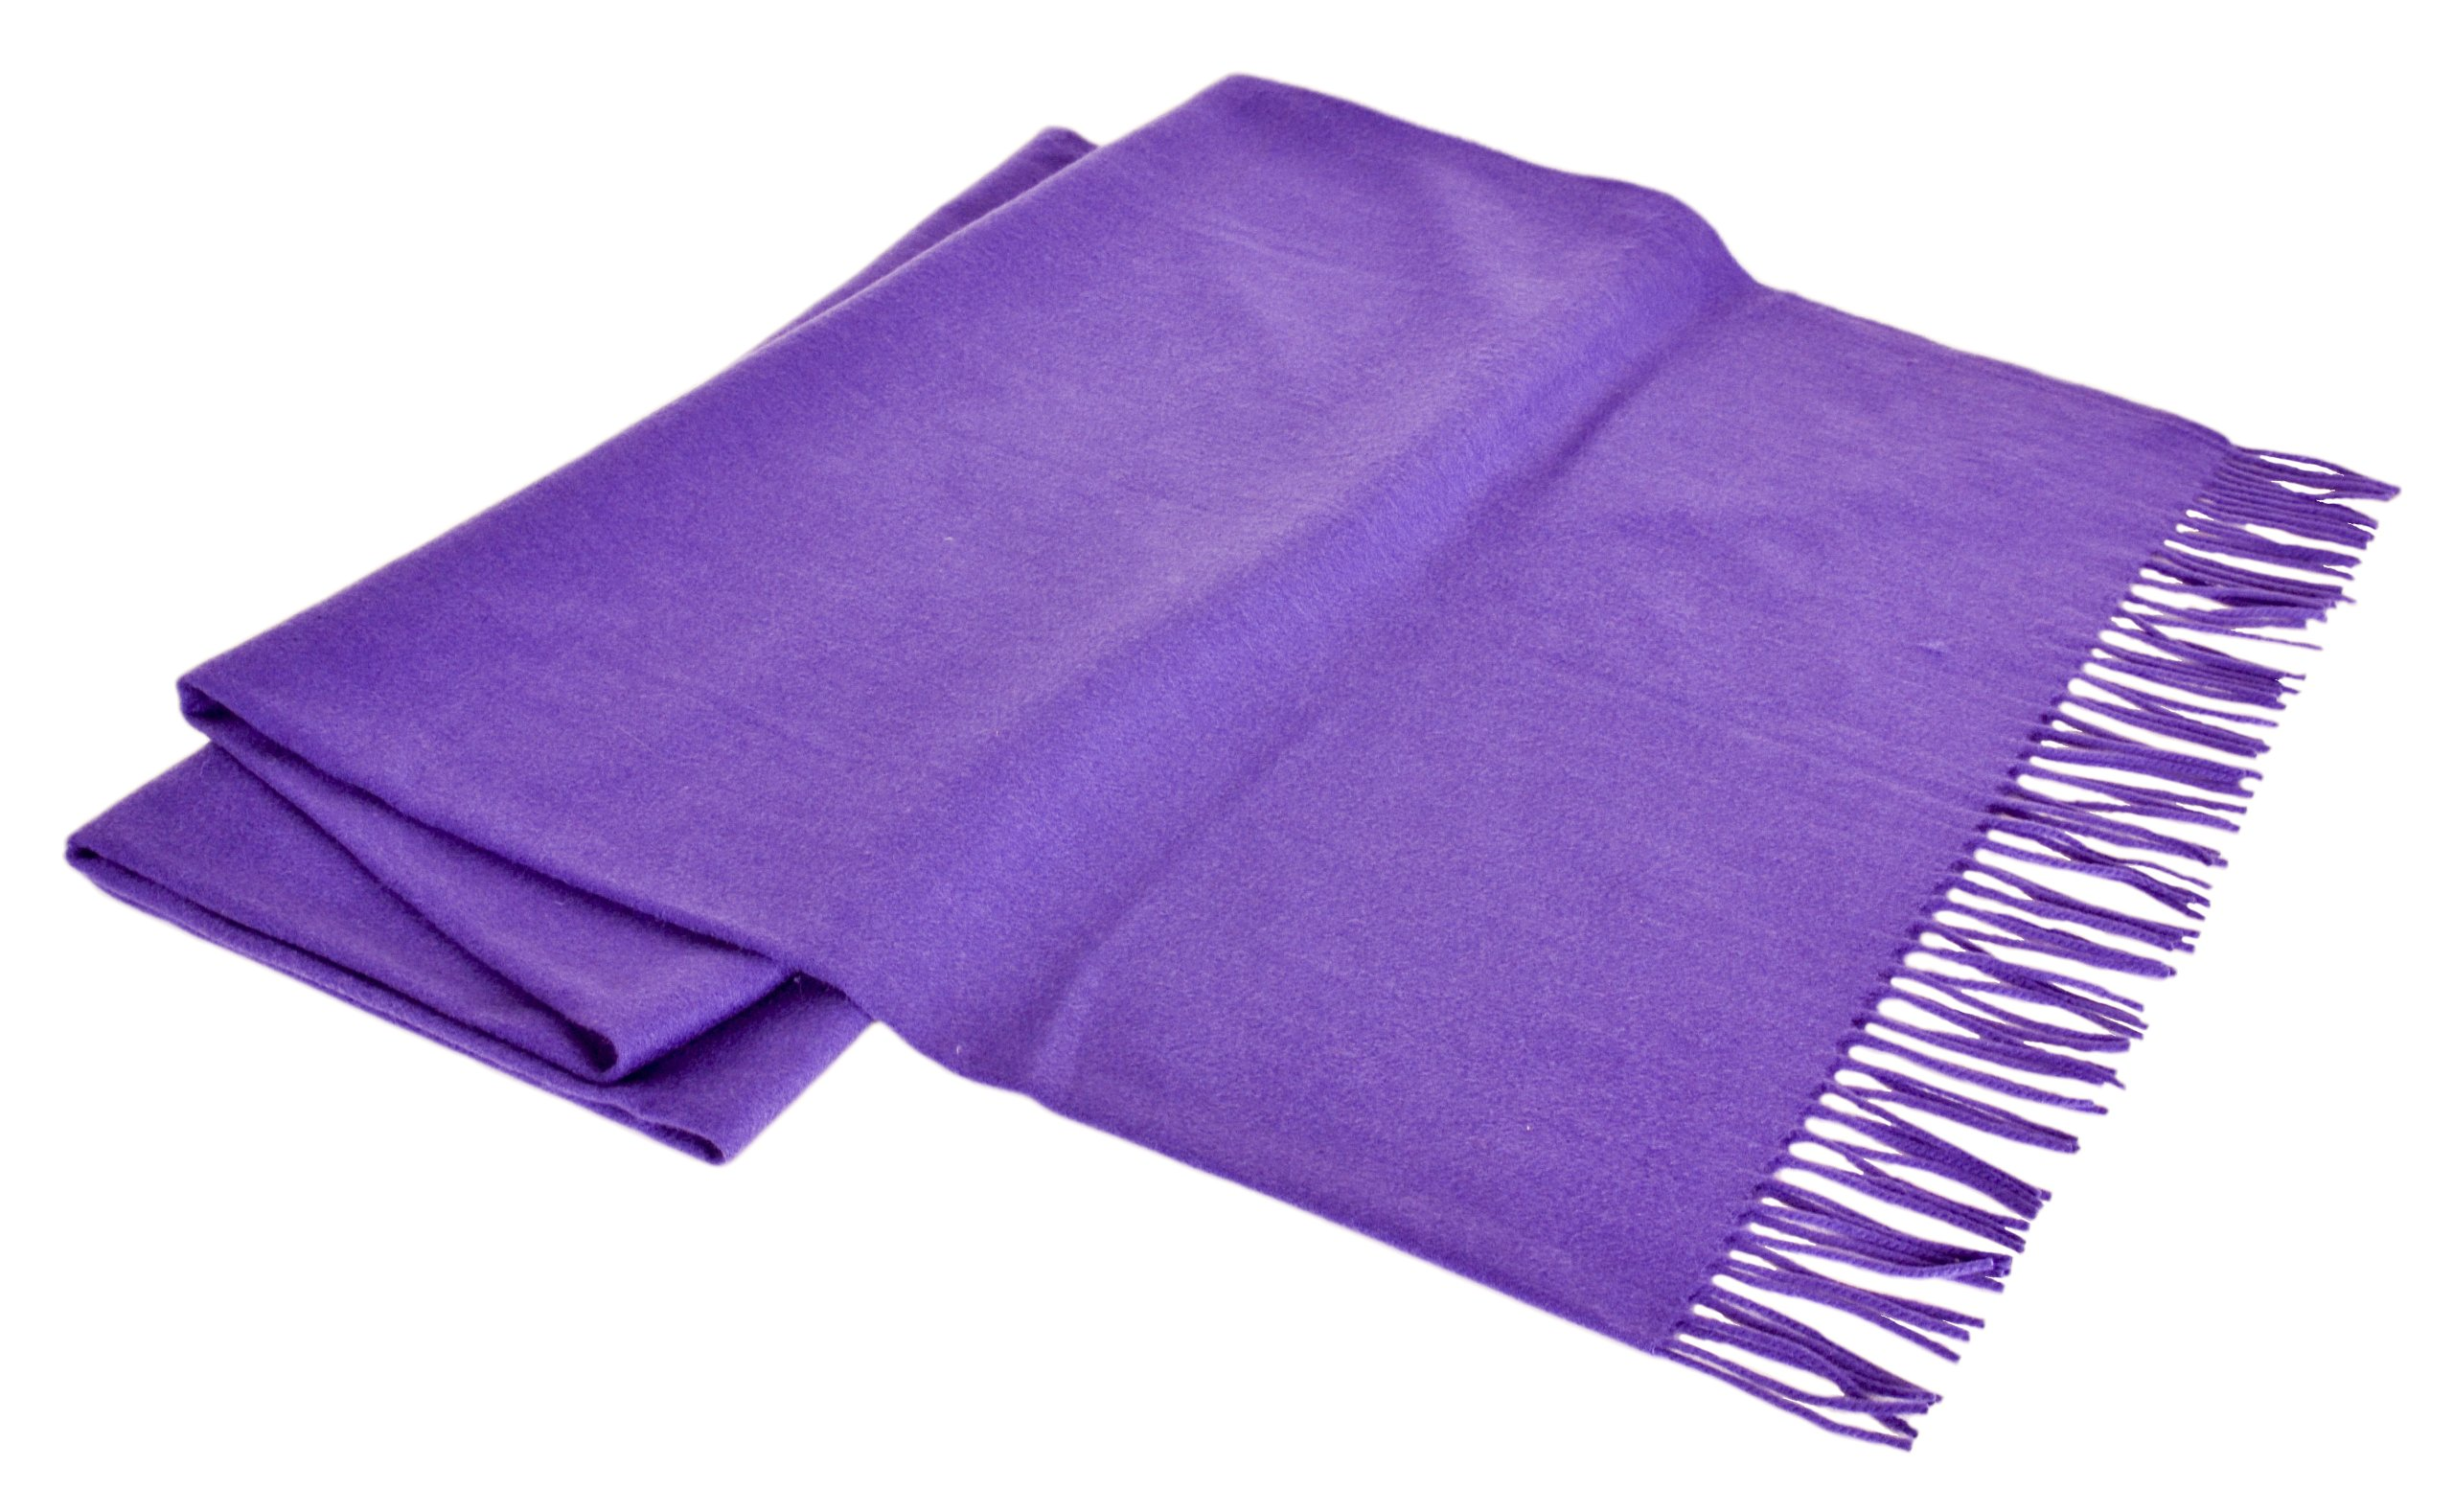 Creswick All Natural Cashmere/Lambswool Fringed Throw, 51 by 73-Inch, Plum